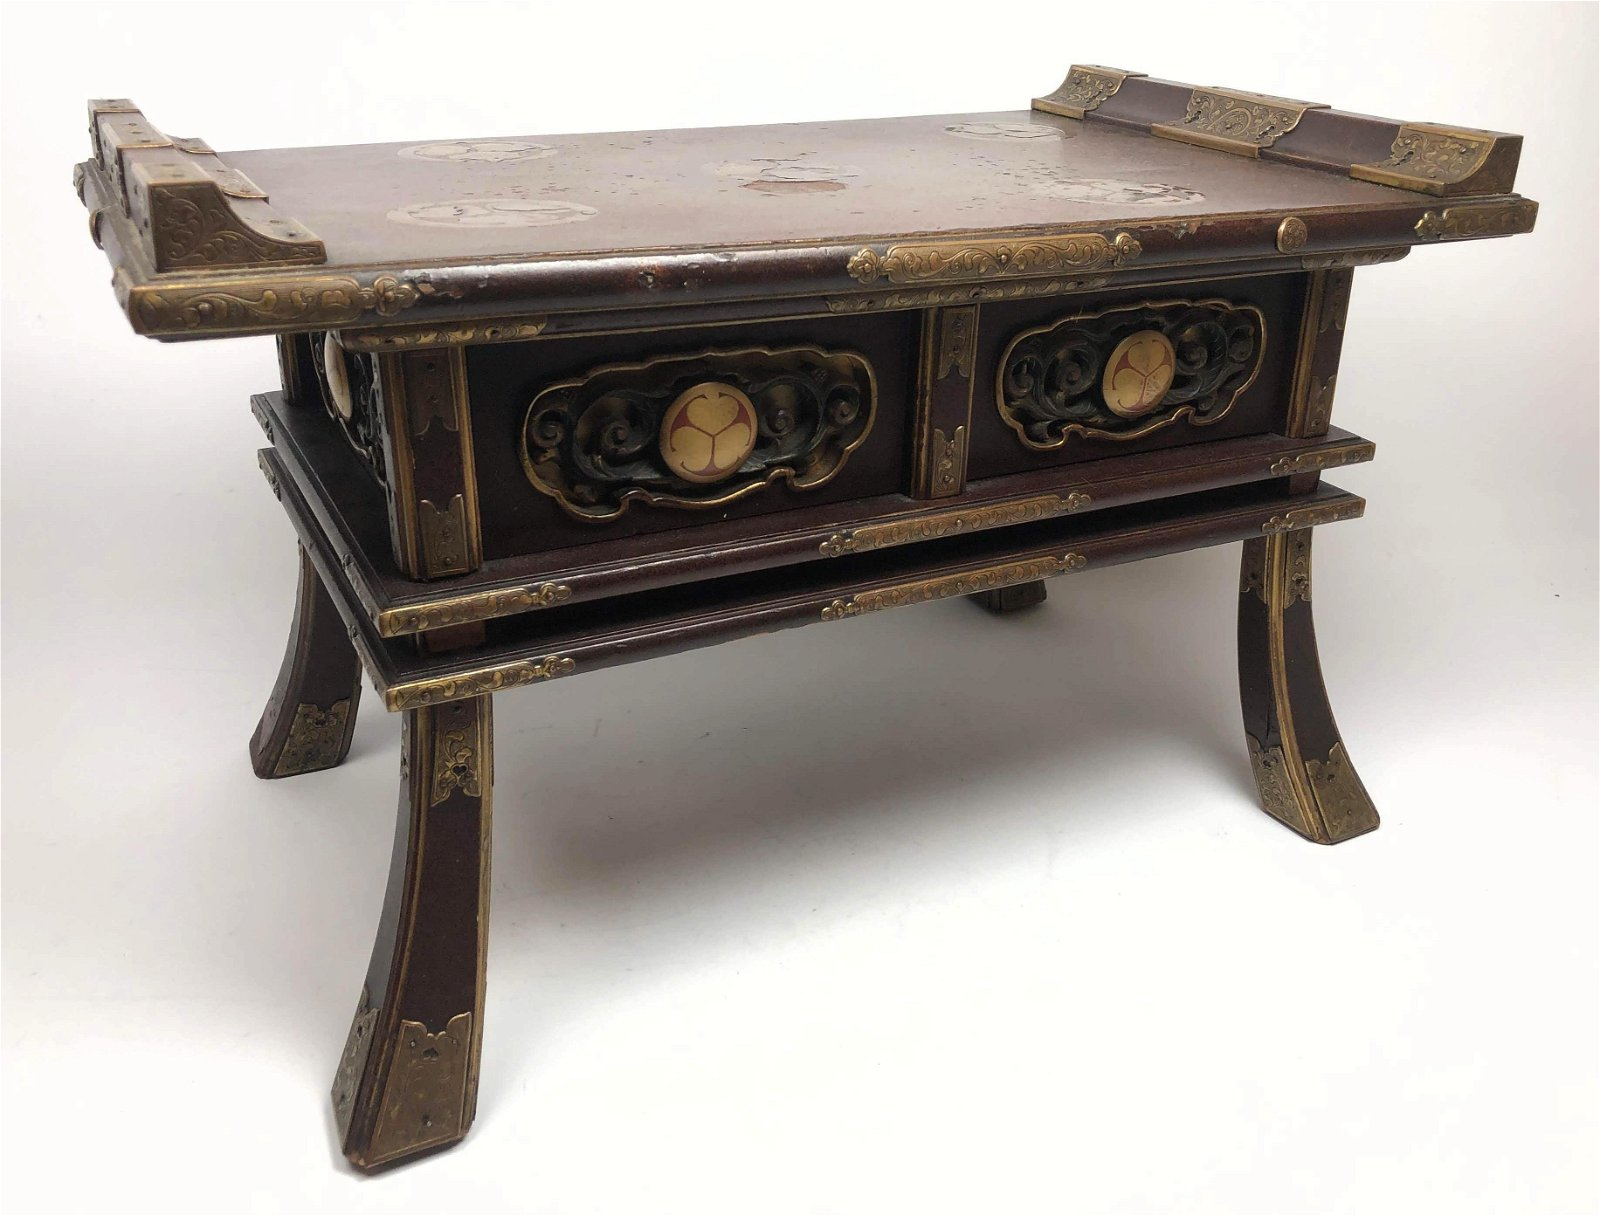 Japanese Lacquer Decorated Buddhist Altar Table. Ornate